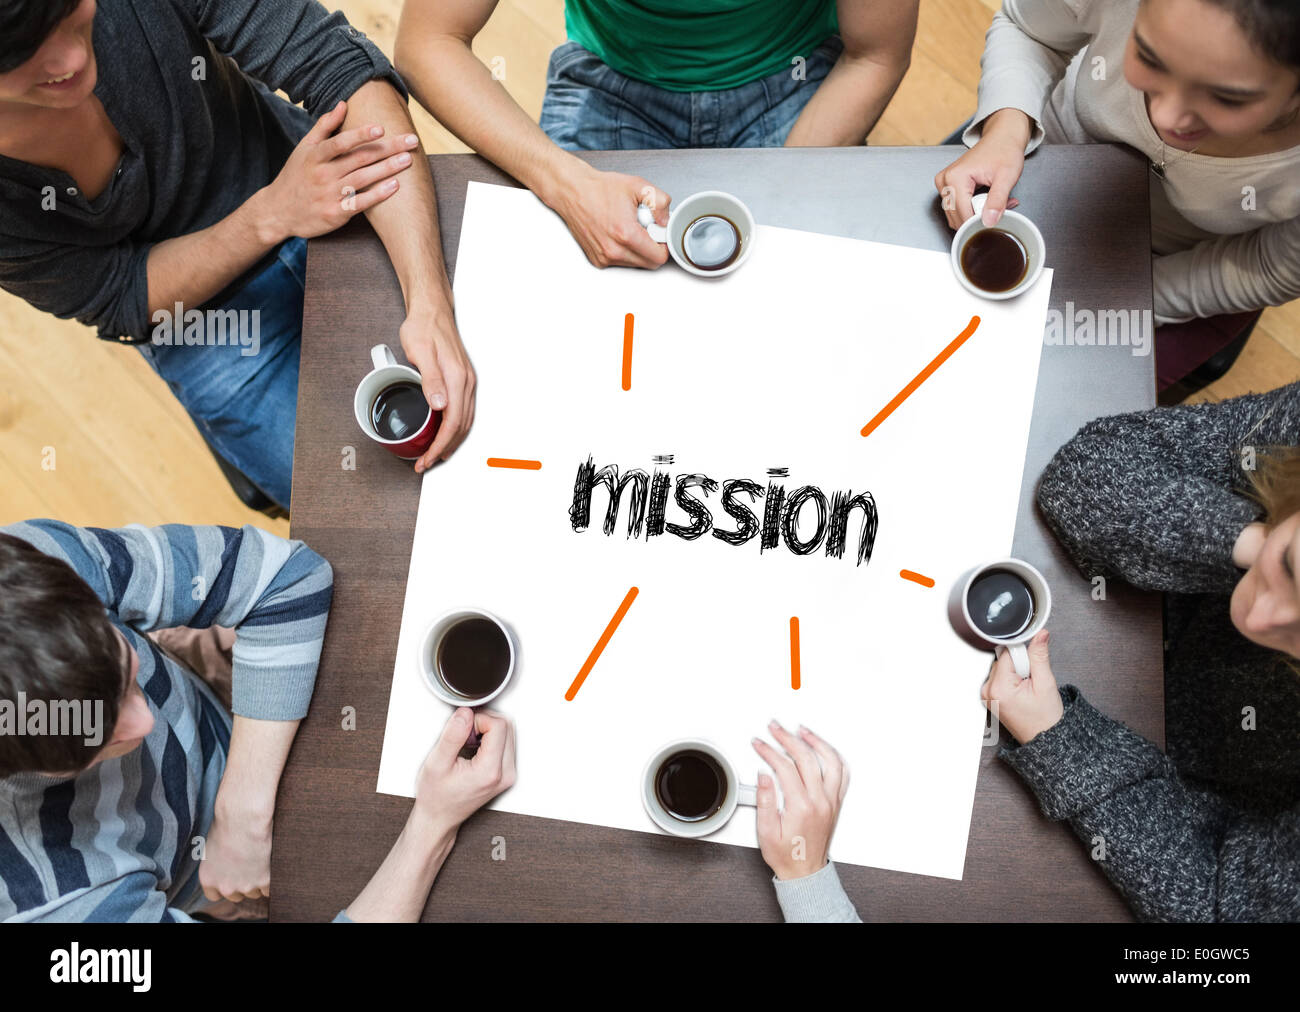 Mission on page with people sitting around table drinking coffee - Stock Image